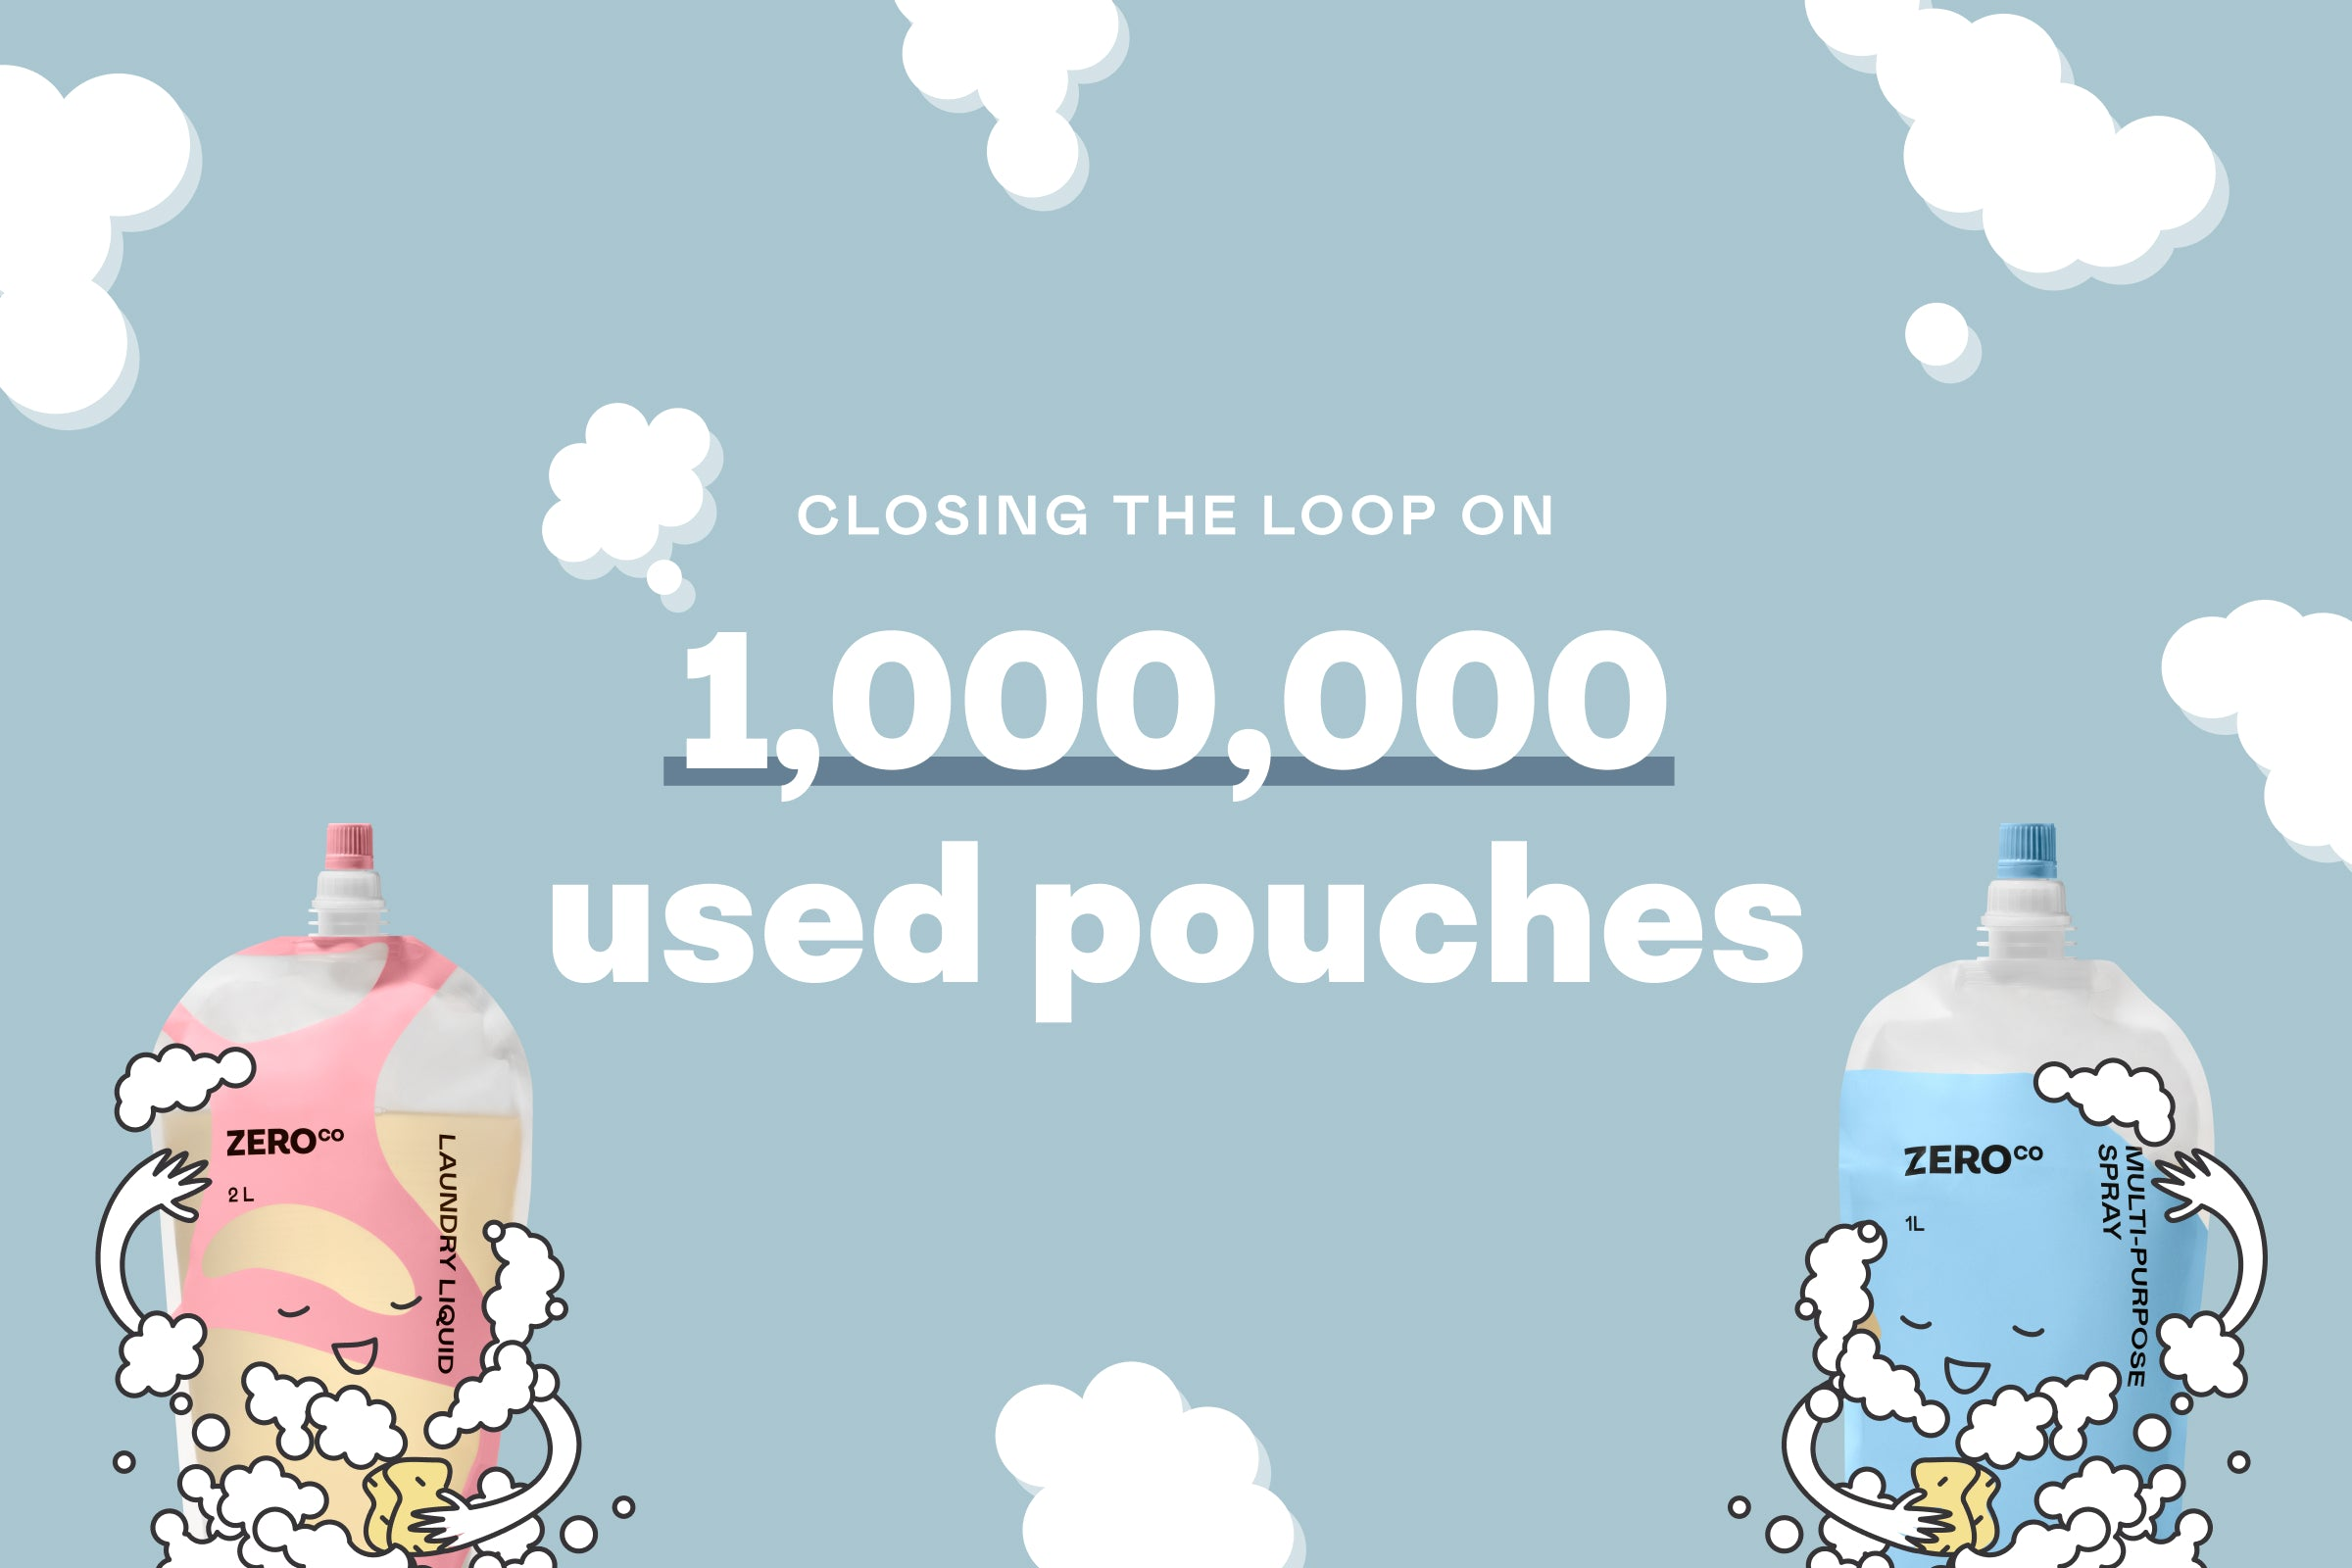 Closing the loop on 1,000,000 used pouches